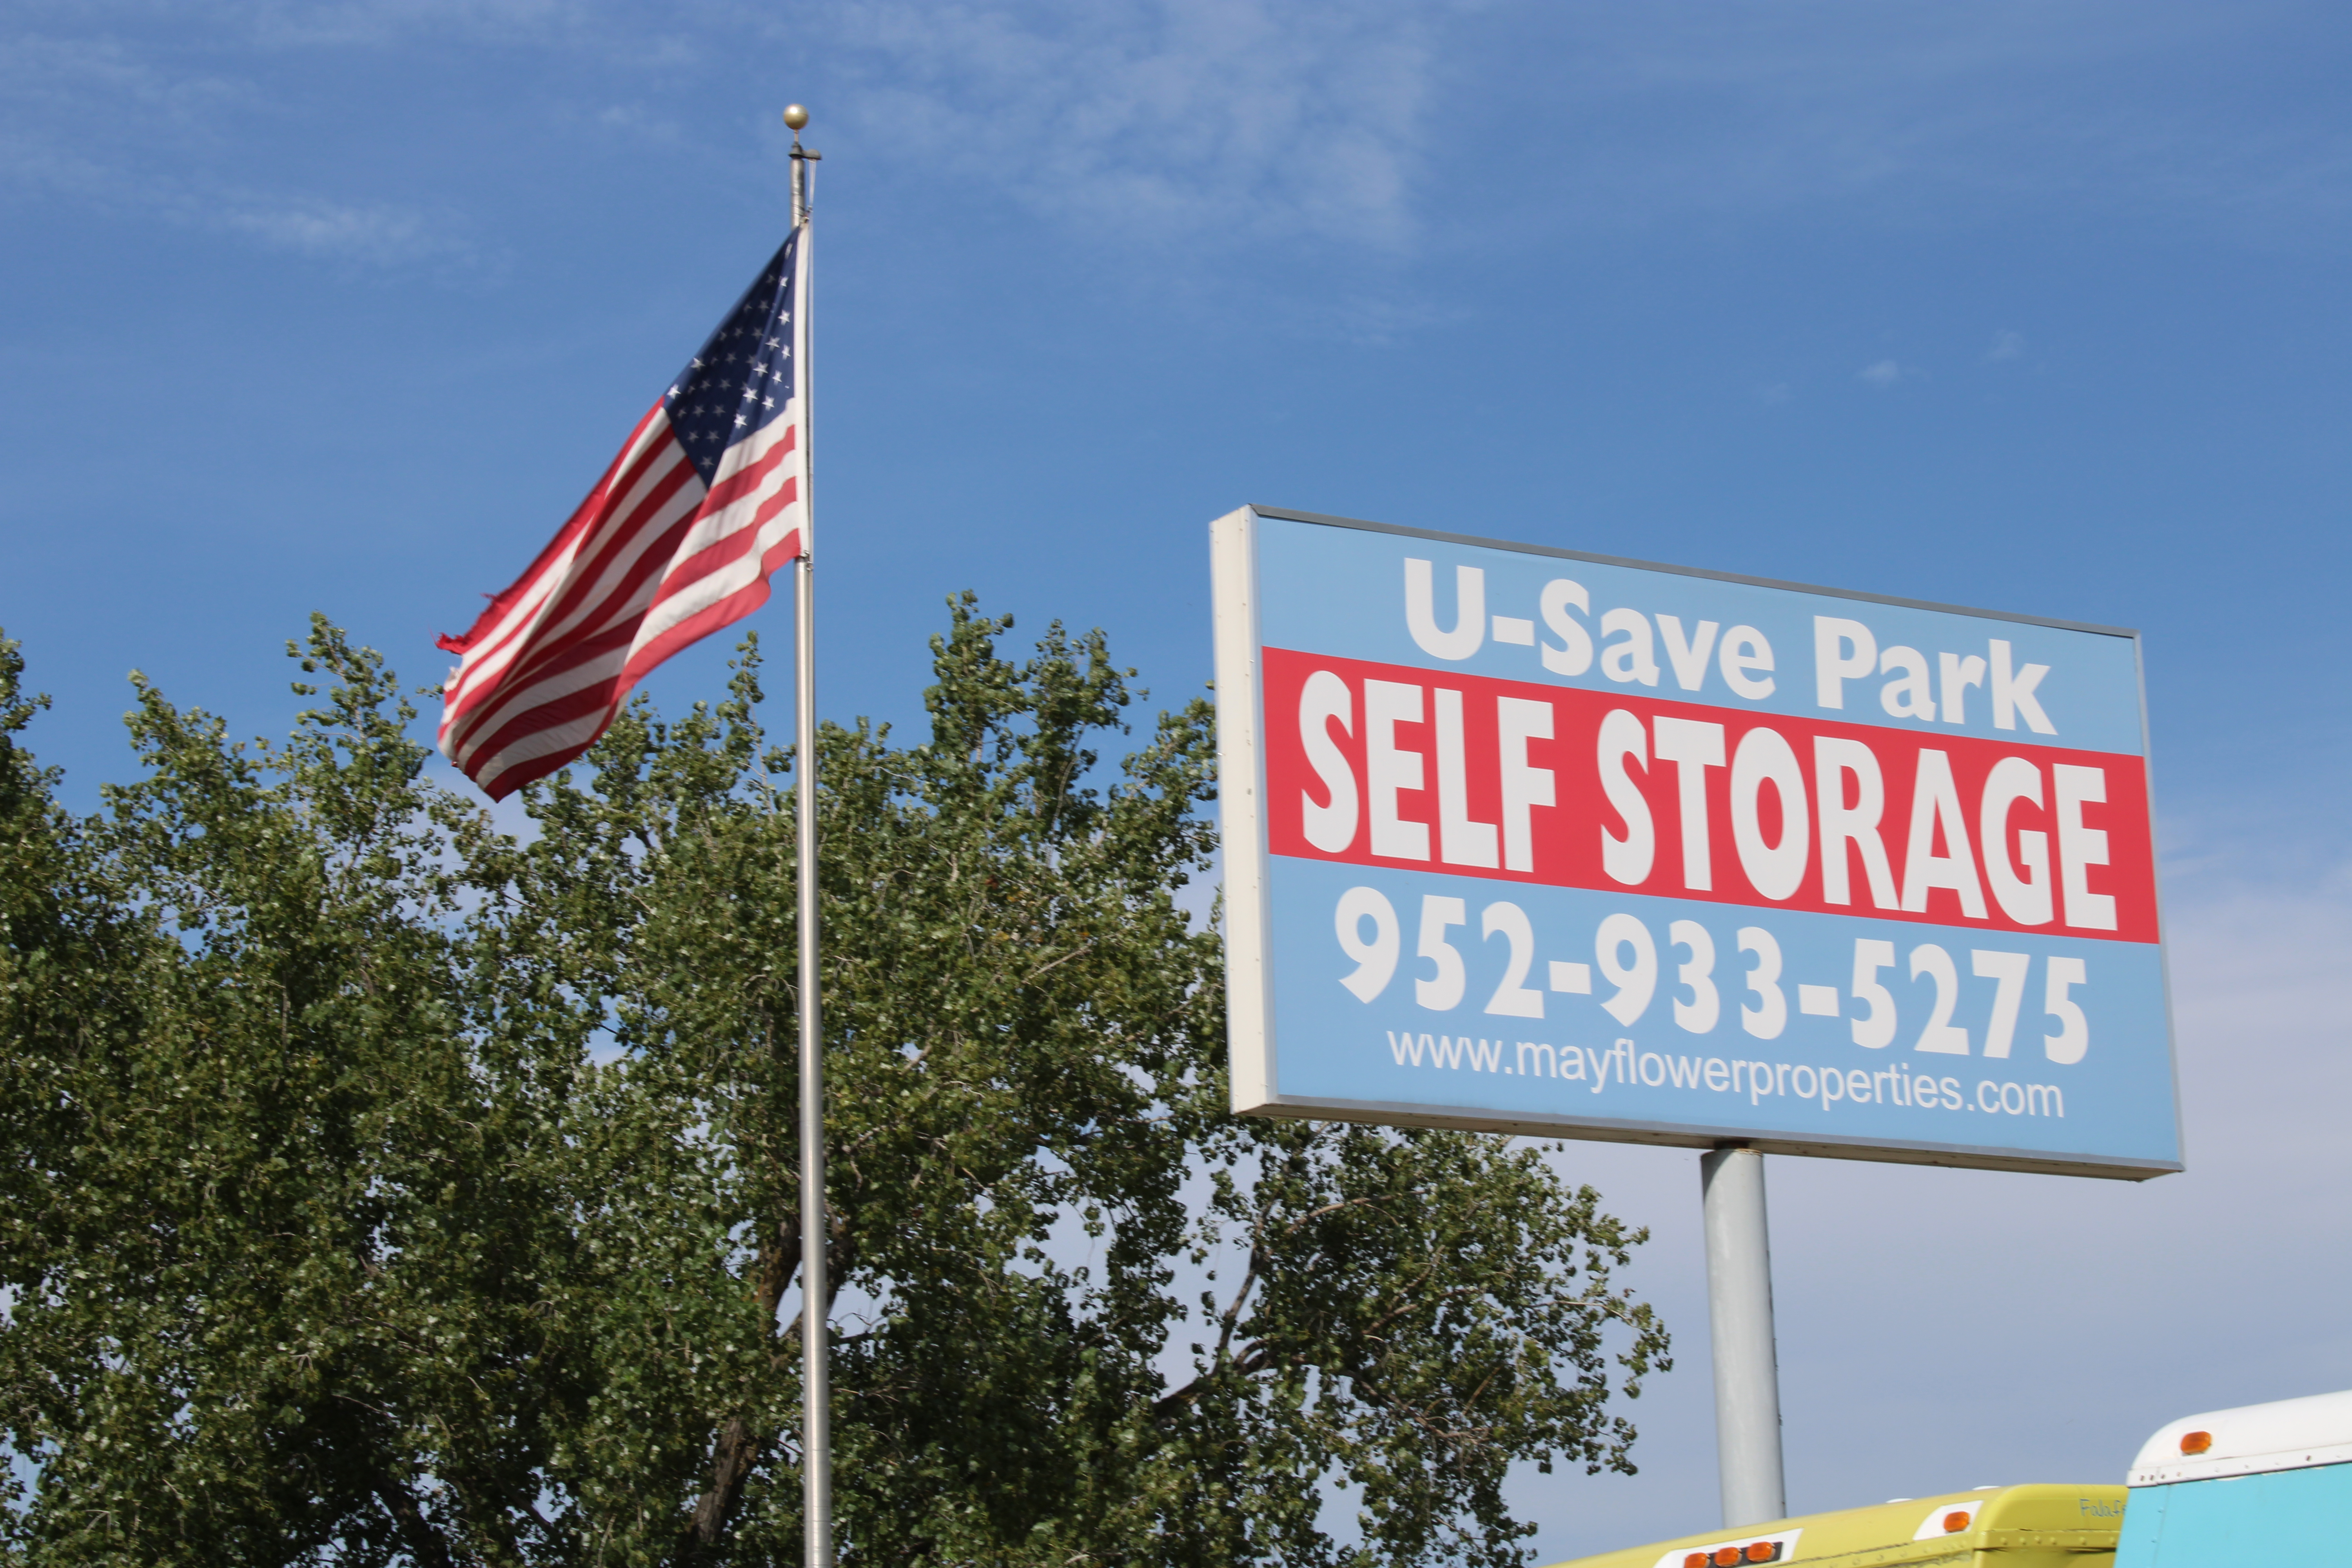 U-Save Park Self Storage